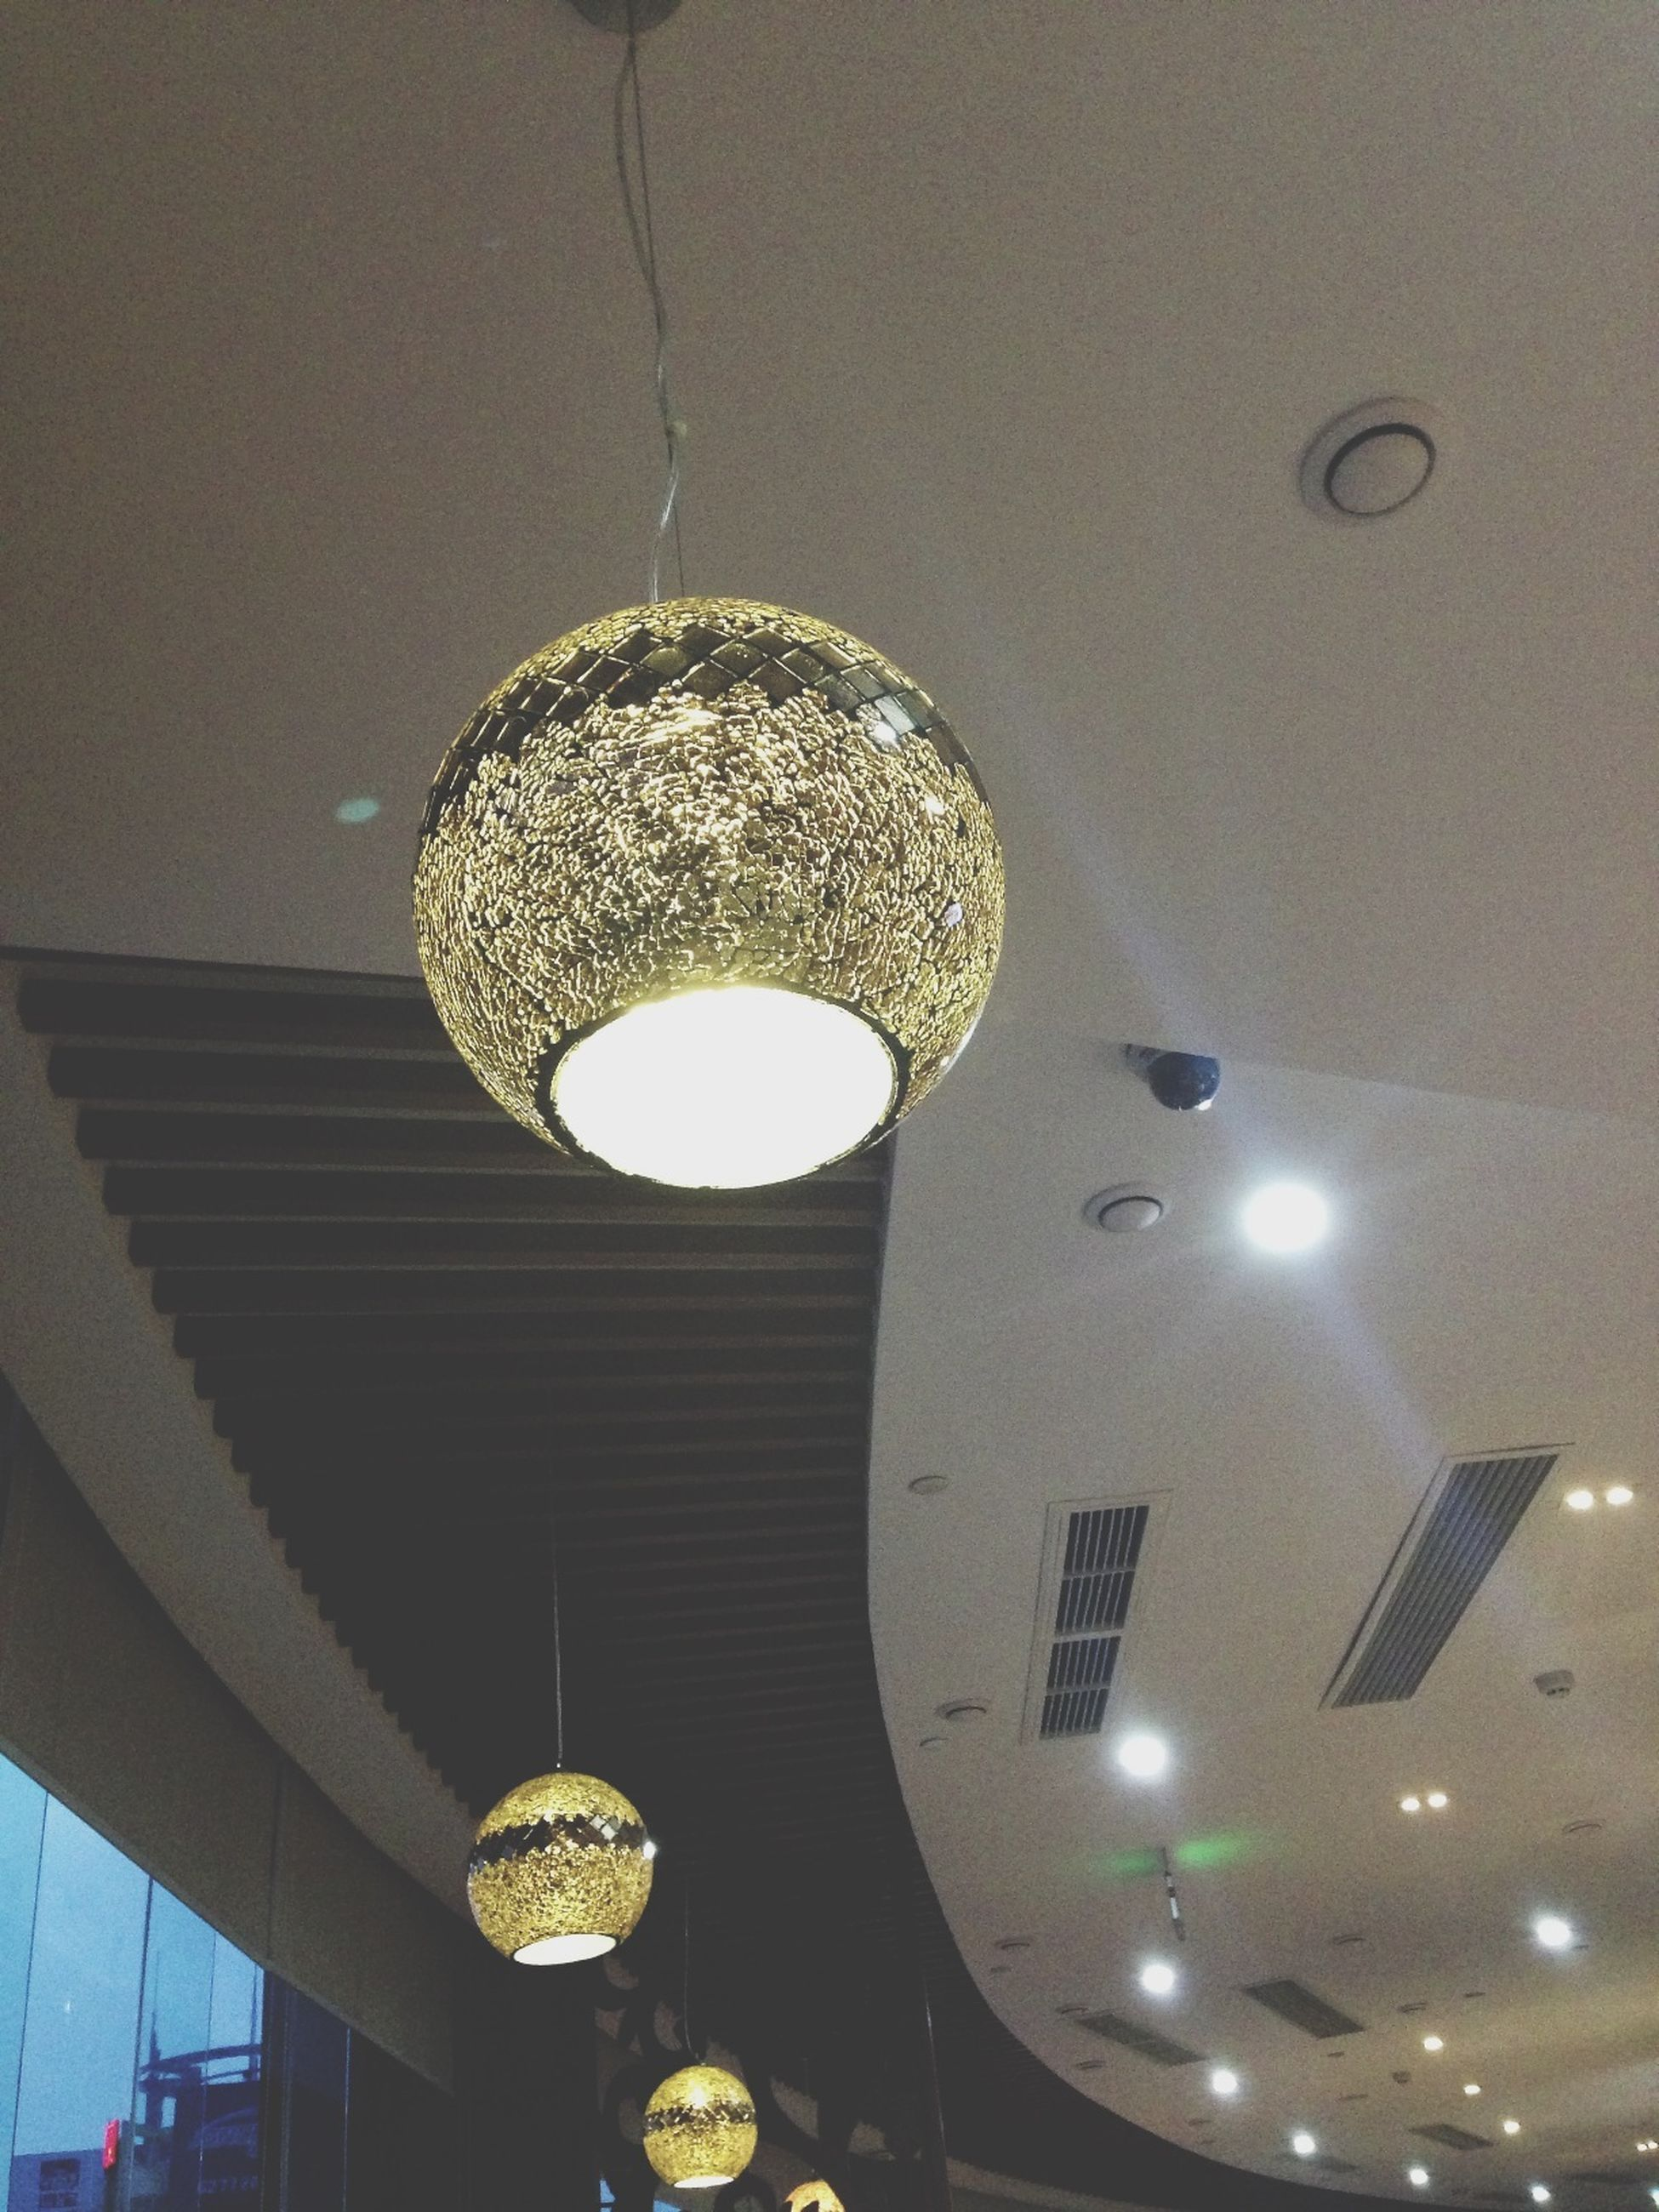 illuminated, indoors, ceiling, lighting equipment, low angle view, hanging, electricity, electric lamp, electric light, chandelier, light bulb, decoration, pendant light, lamp, glowing, technology, light fixture, light - natural phenomenon, decor, home interior